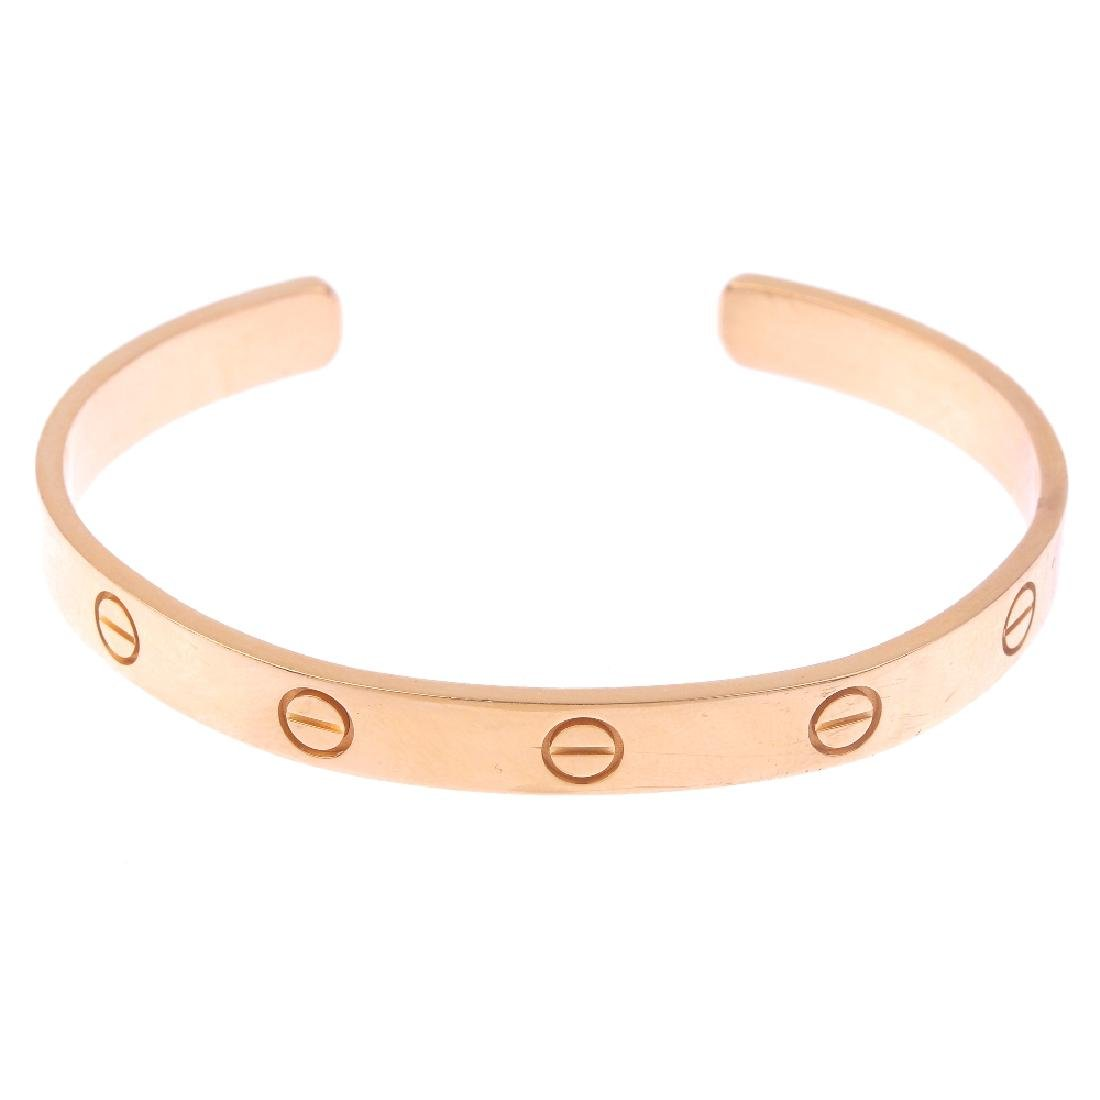 CARTIER - an 18ct gold 'Love' bangle. The open bangle,